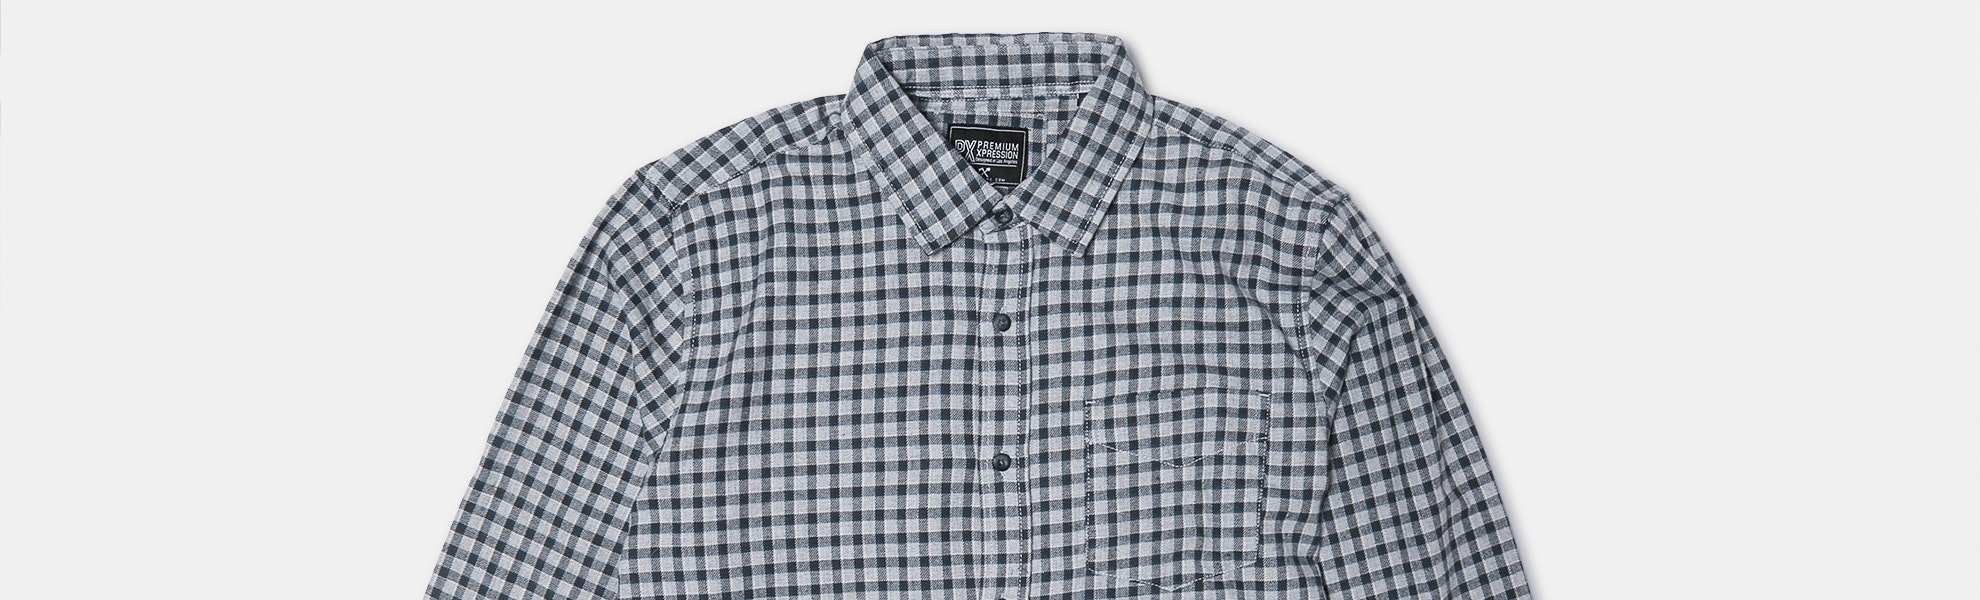 PX Clothing LS Woven Shirts